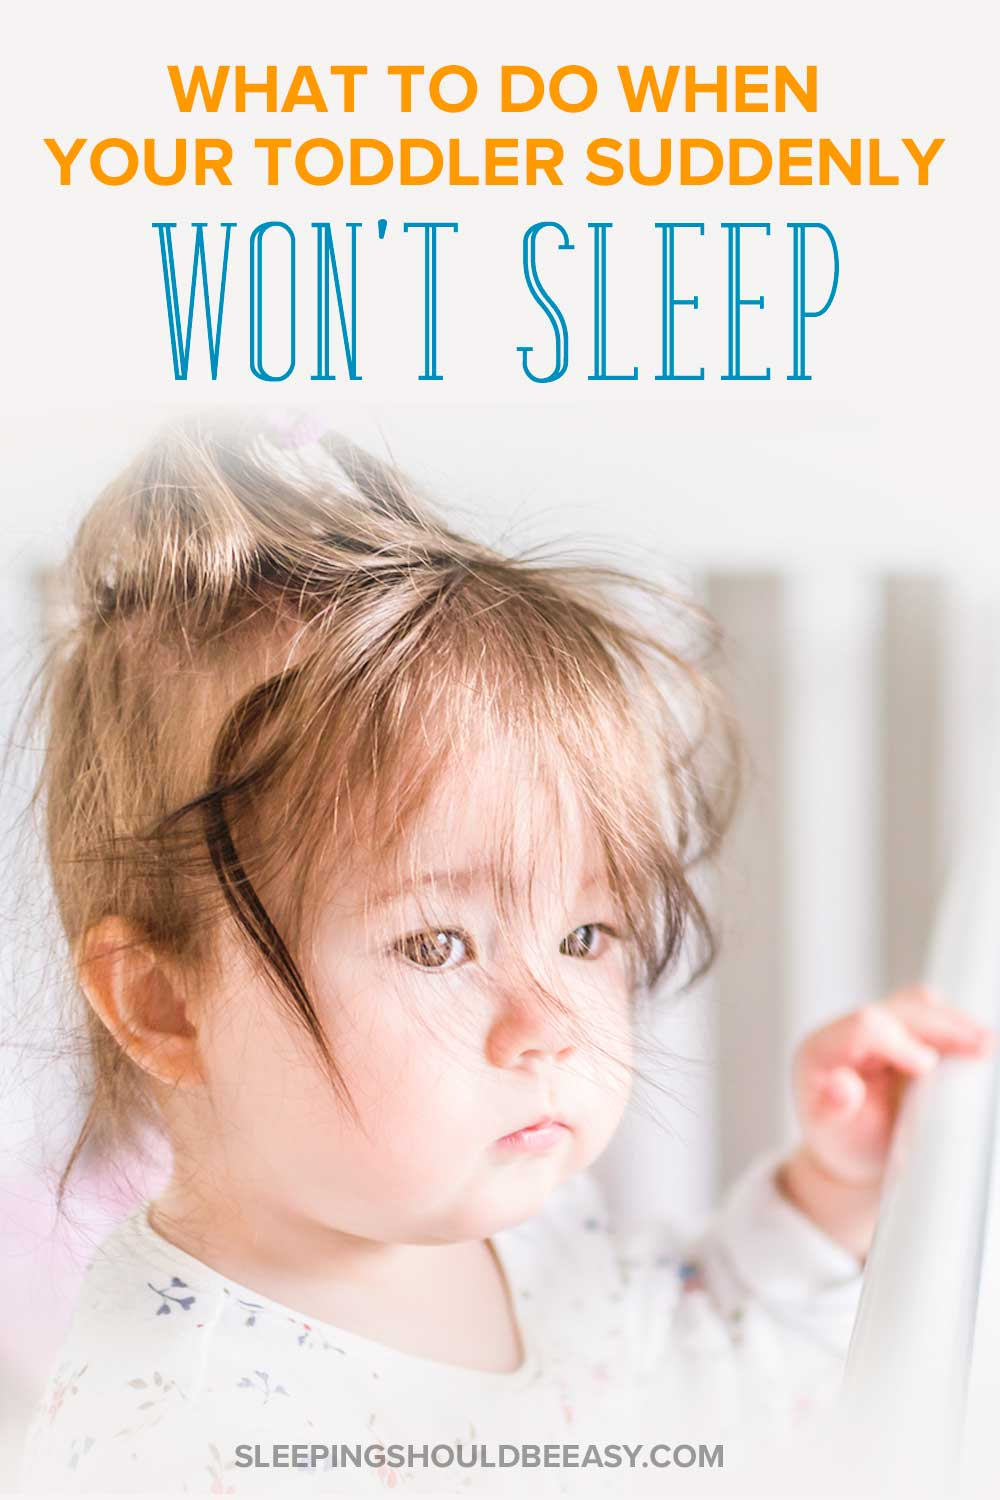 Toddler suddenly won't sleep